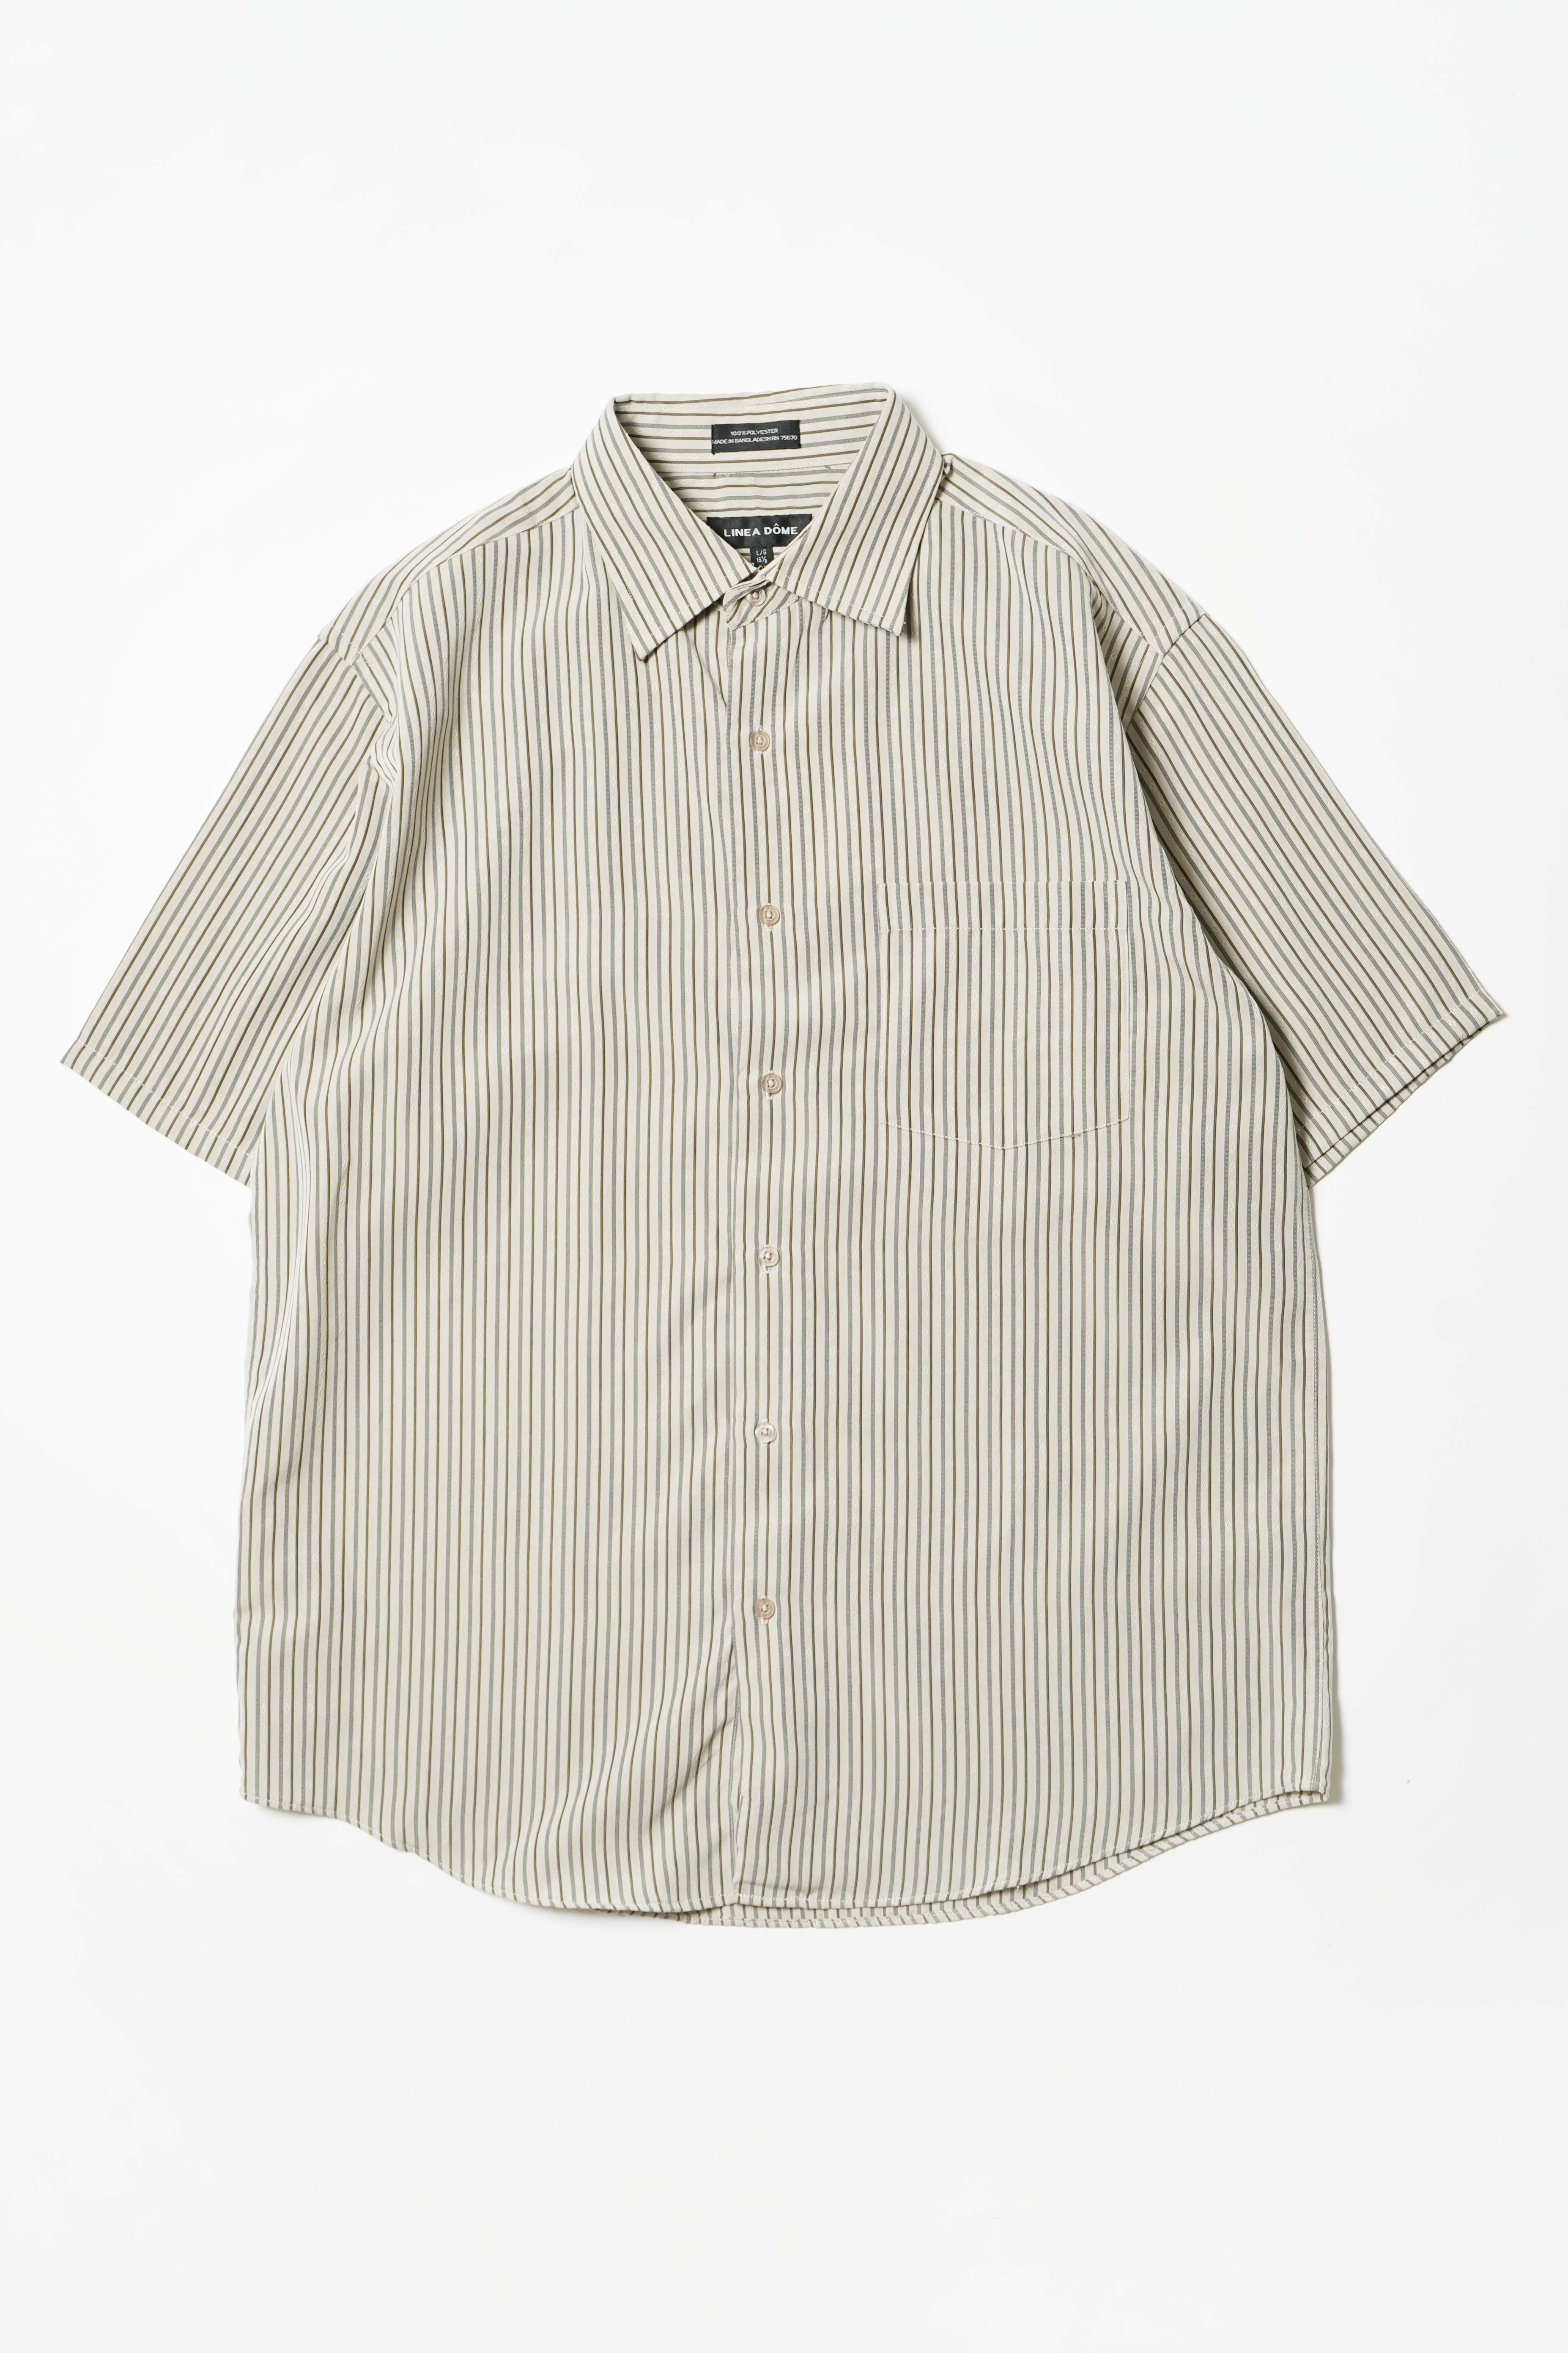 STRIPE BEIGE DESIGN S/S SHIRT